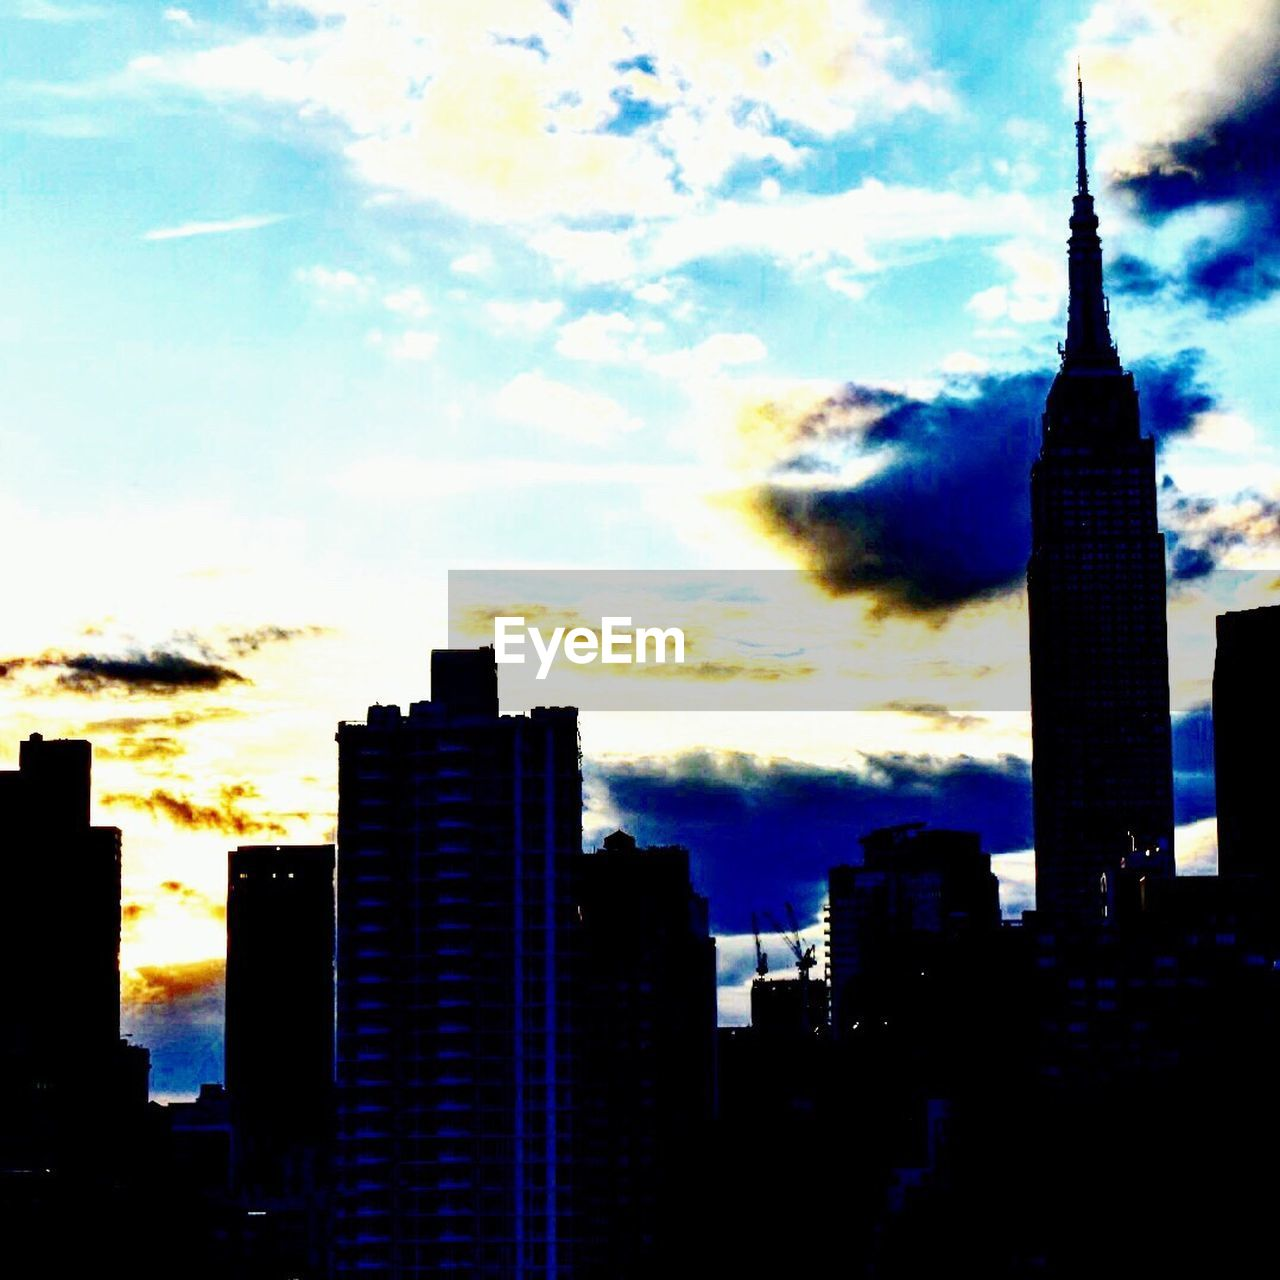 architecture, building exterior, built structure, skyscraper, tall - high, sky, city, tower, modern, cloud - sky, sunset, no people, cityscape, travel destinations, silhouette, outdoors, tall, urban skyline, nature, day